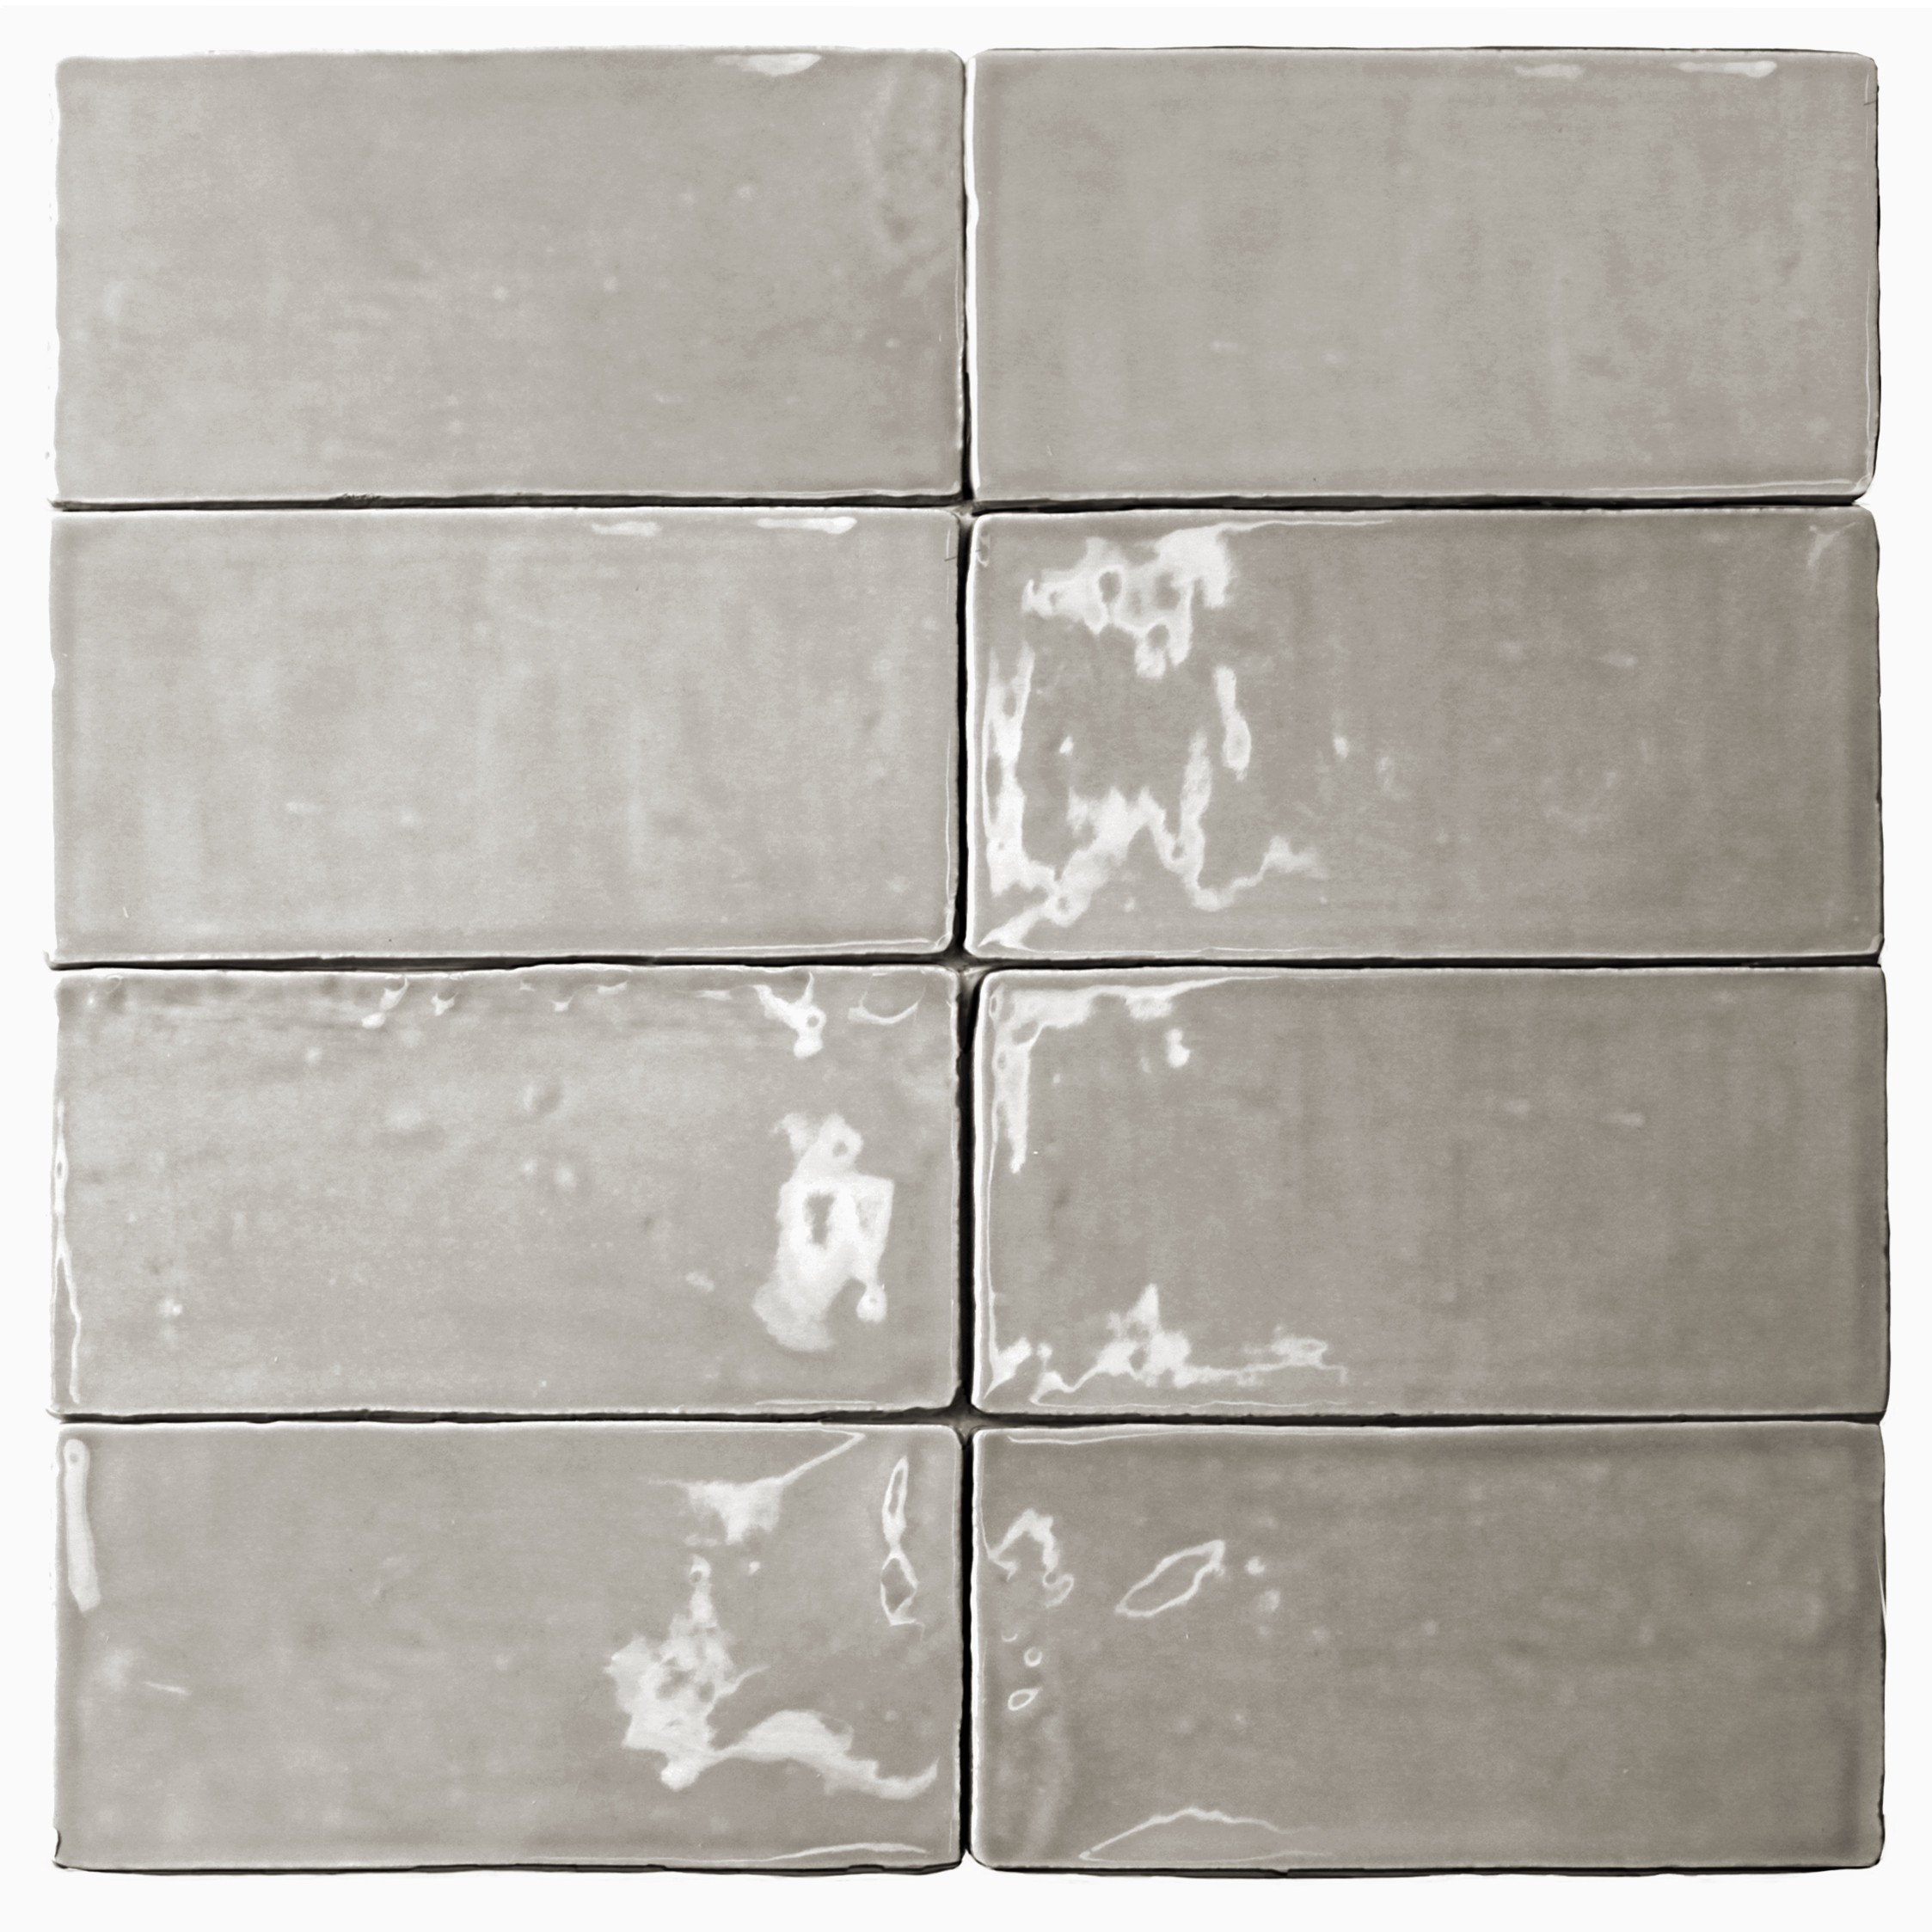 Shop for lancaster dove 3x6 ceramic tiles at Ceramic tile store